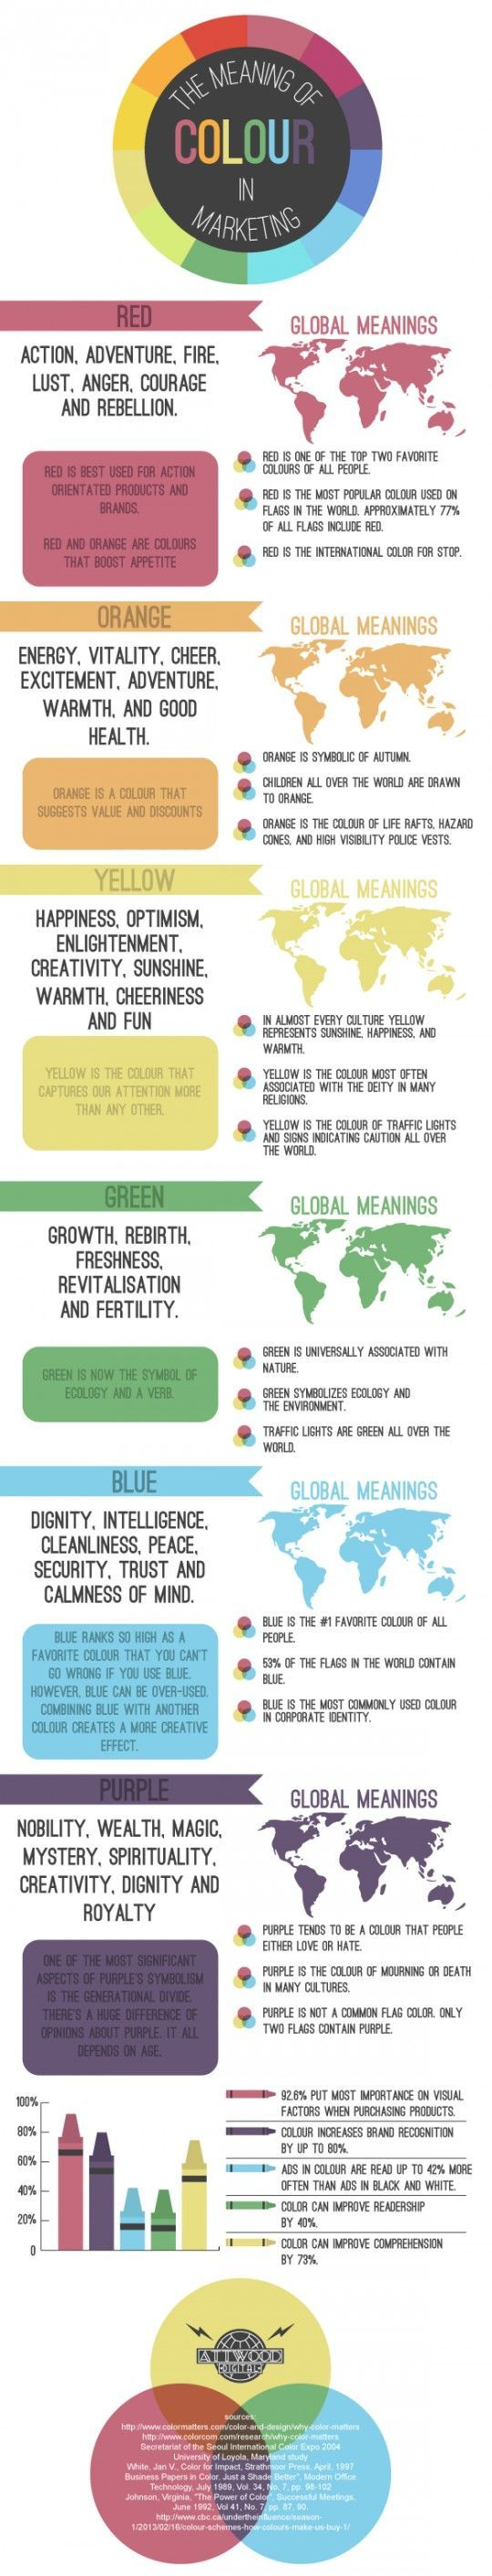 Best 25 meaning of colors ideas on pinterest color meanings the meaning of color in marketing nvjuhfo Image collections